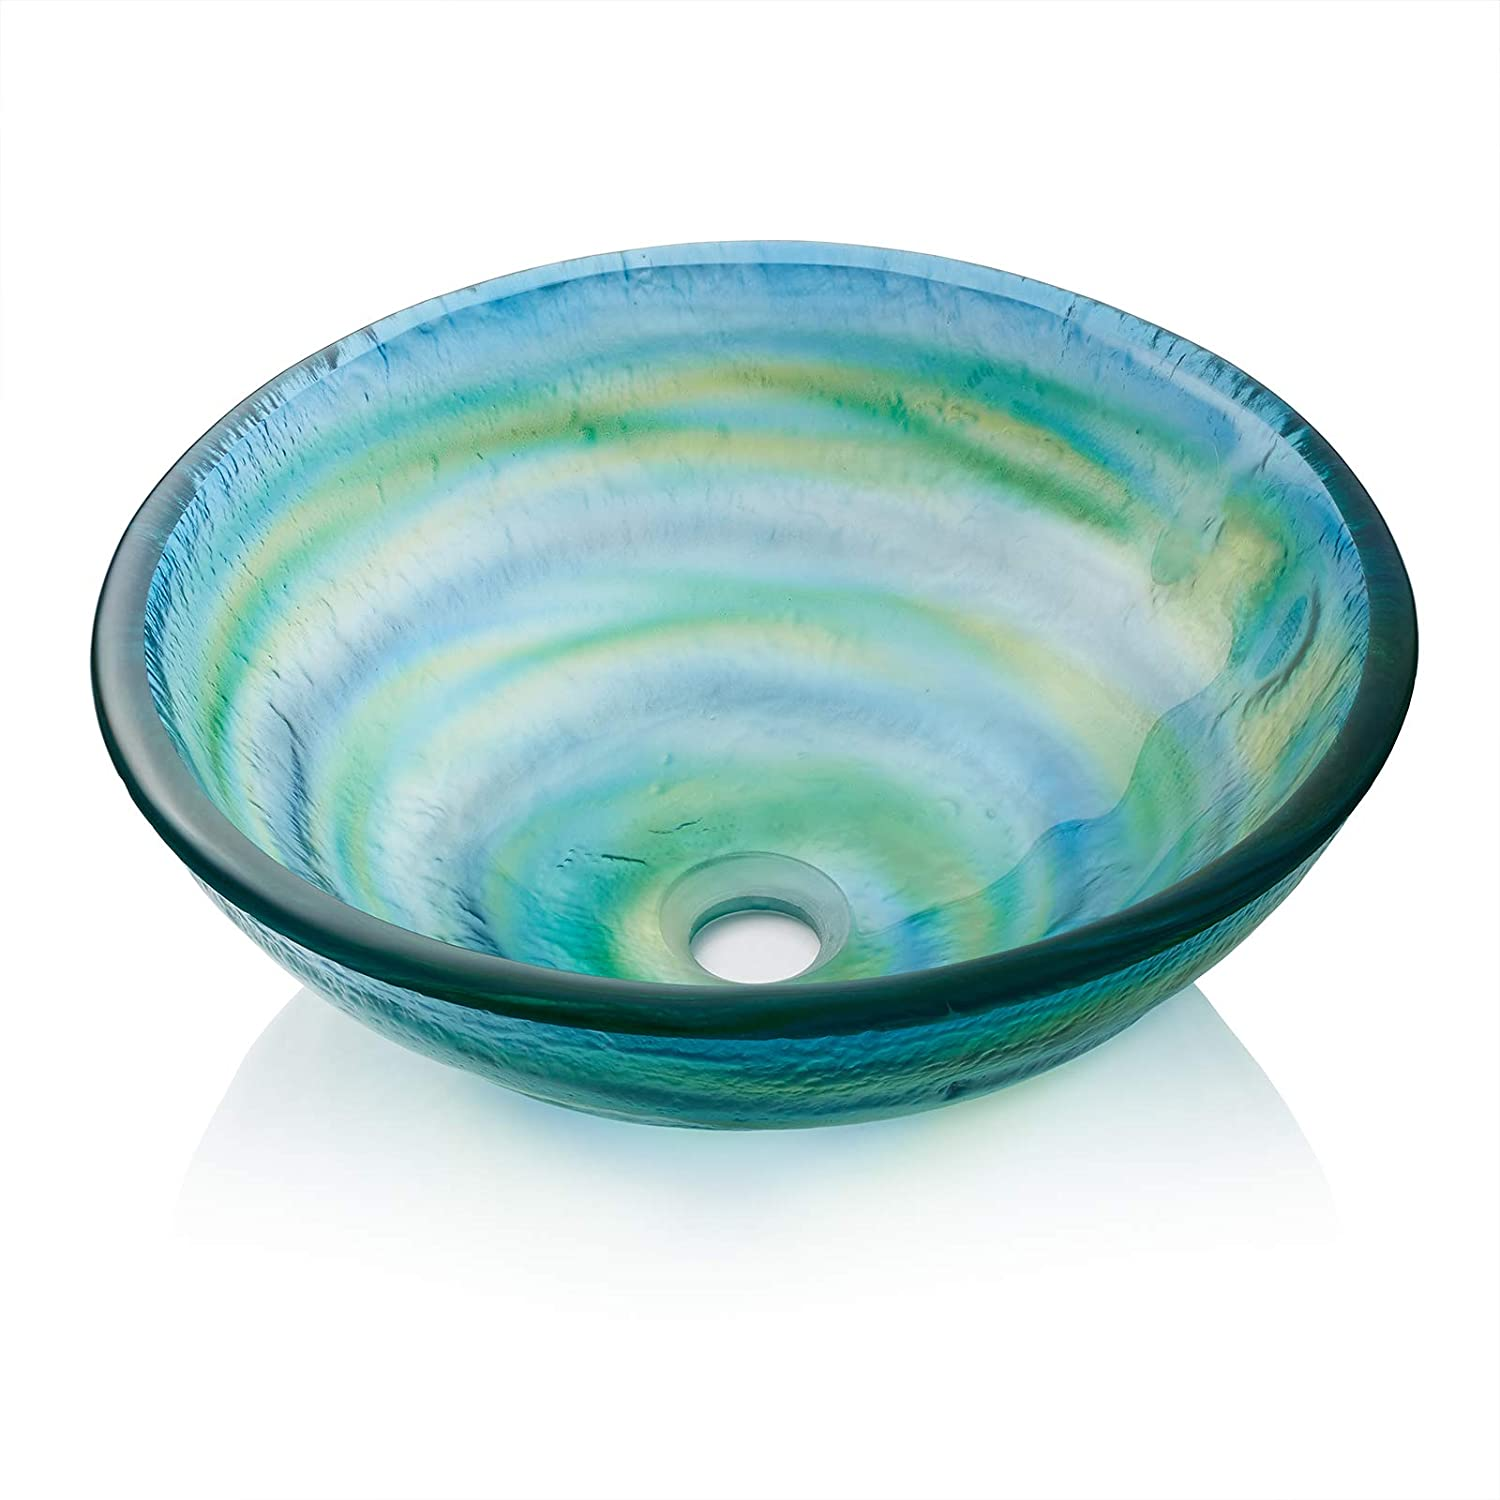 Miligore Modern Glass Vessel Sink – Above Counter Bathroom Vanity Basin Bowl – Round Blue Green